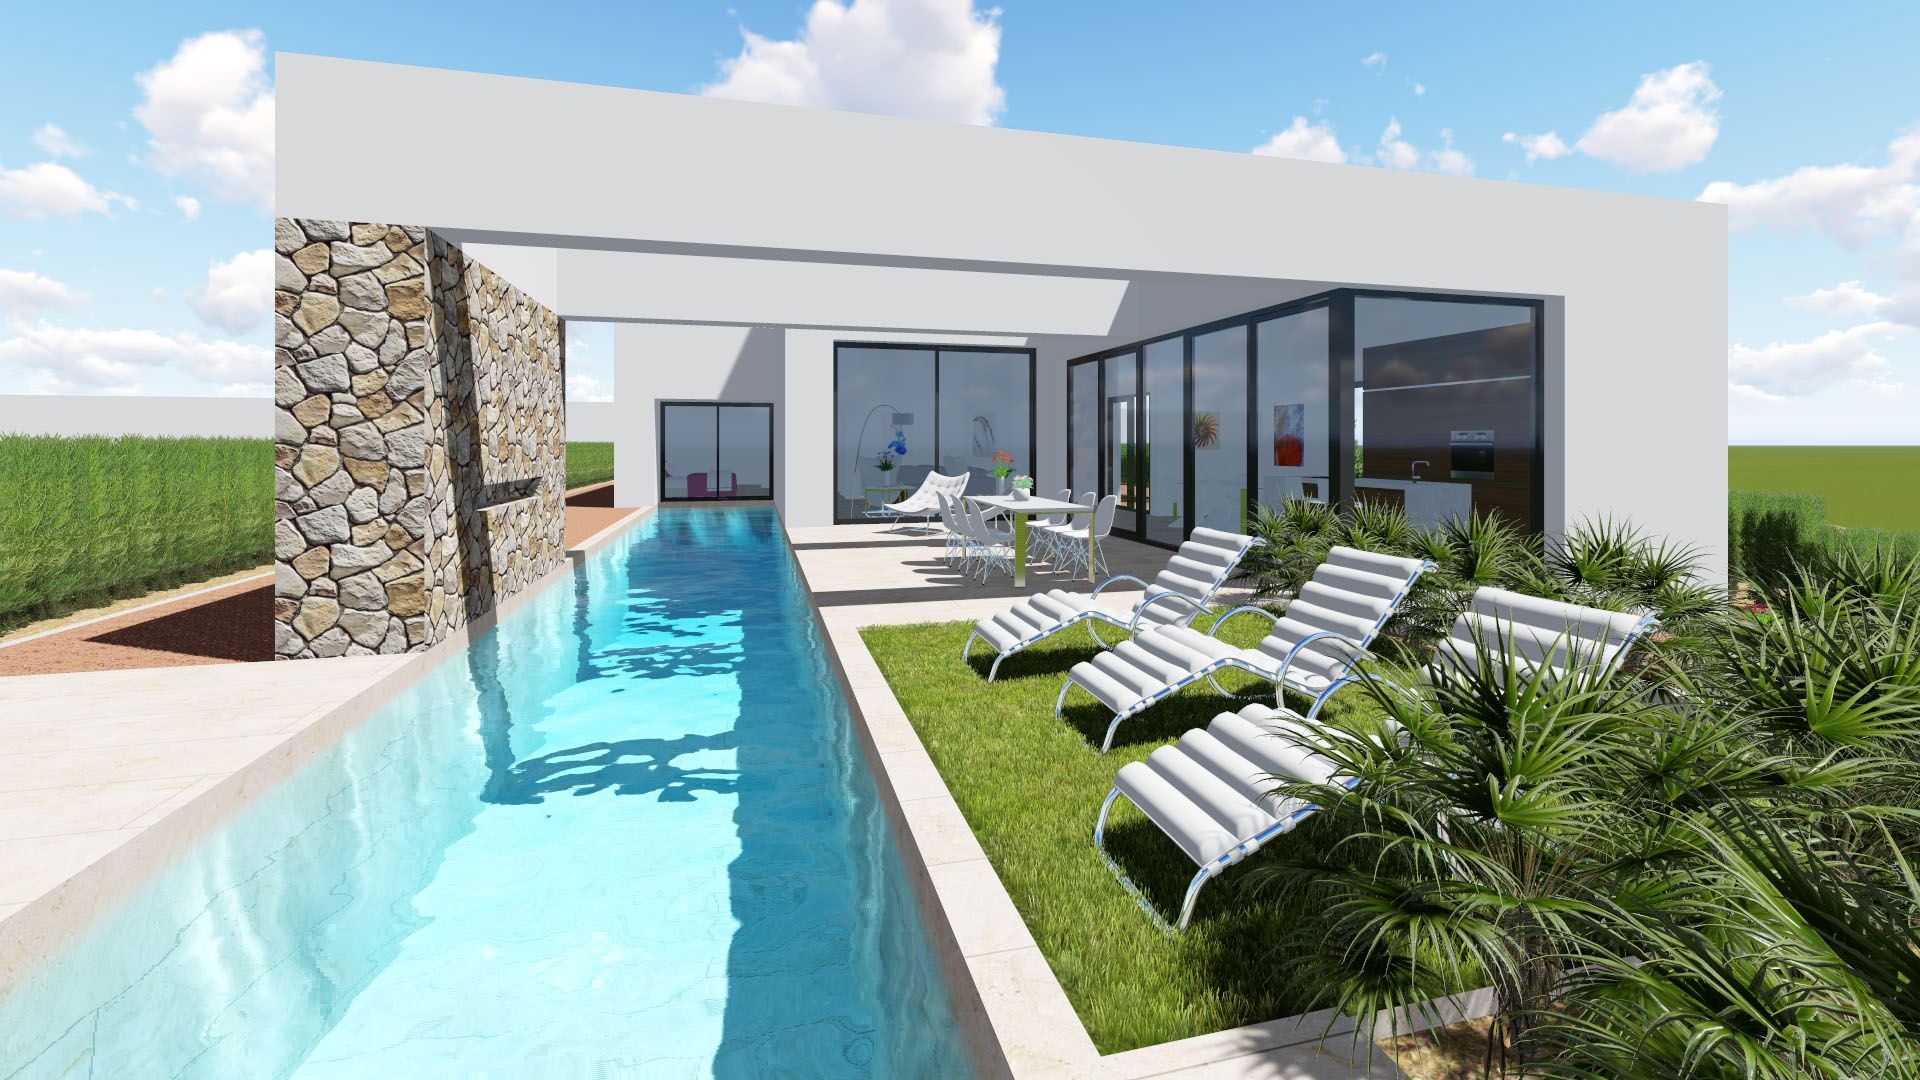 New 3 bedroom detached villa with private pool and garden in Benijófar 1